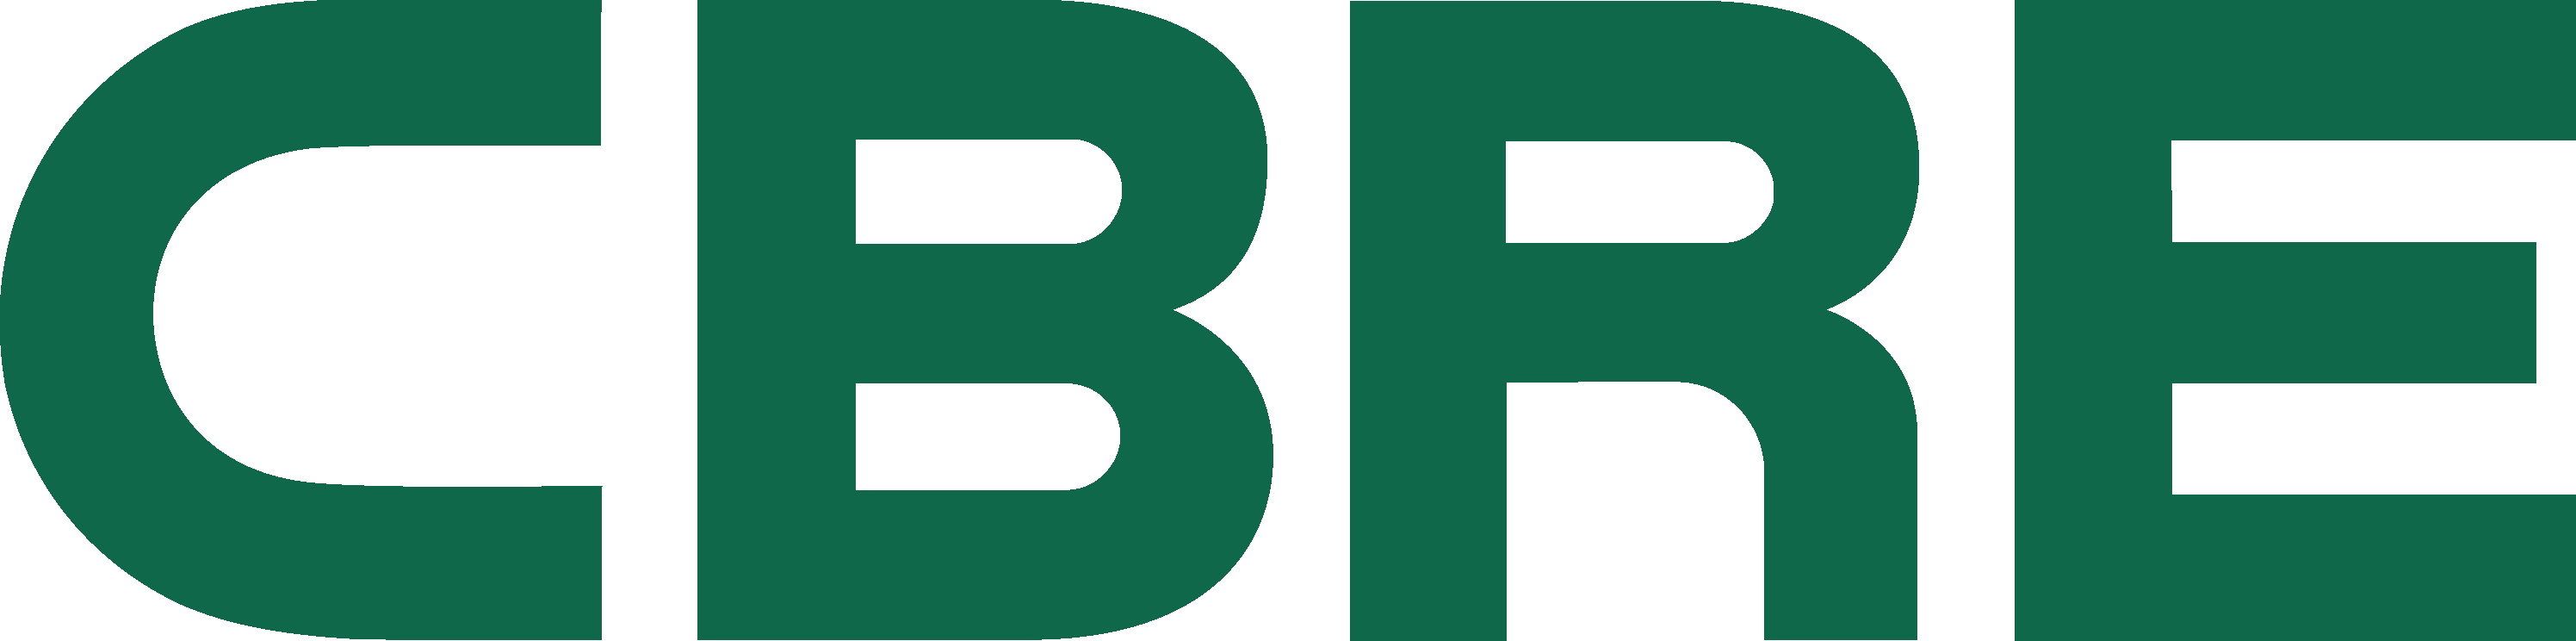 CBRE Logo Download Vector.